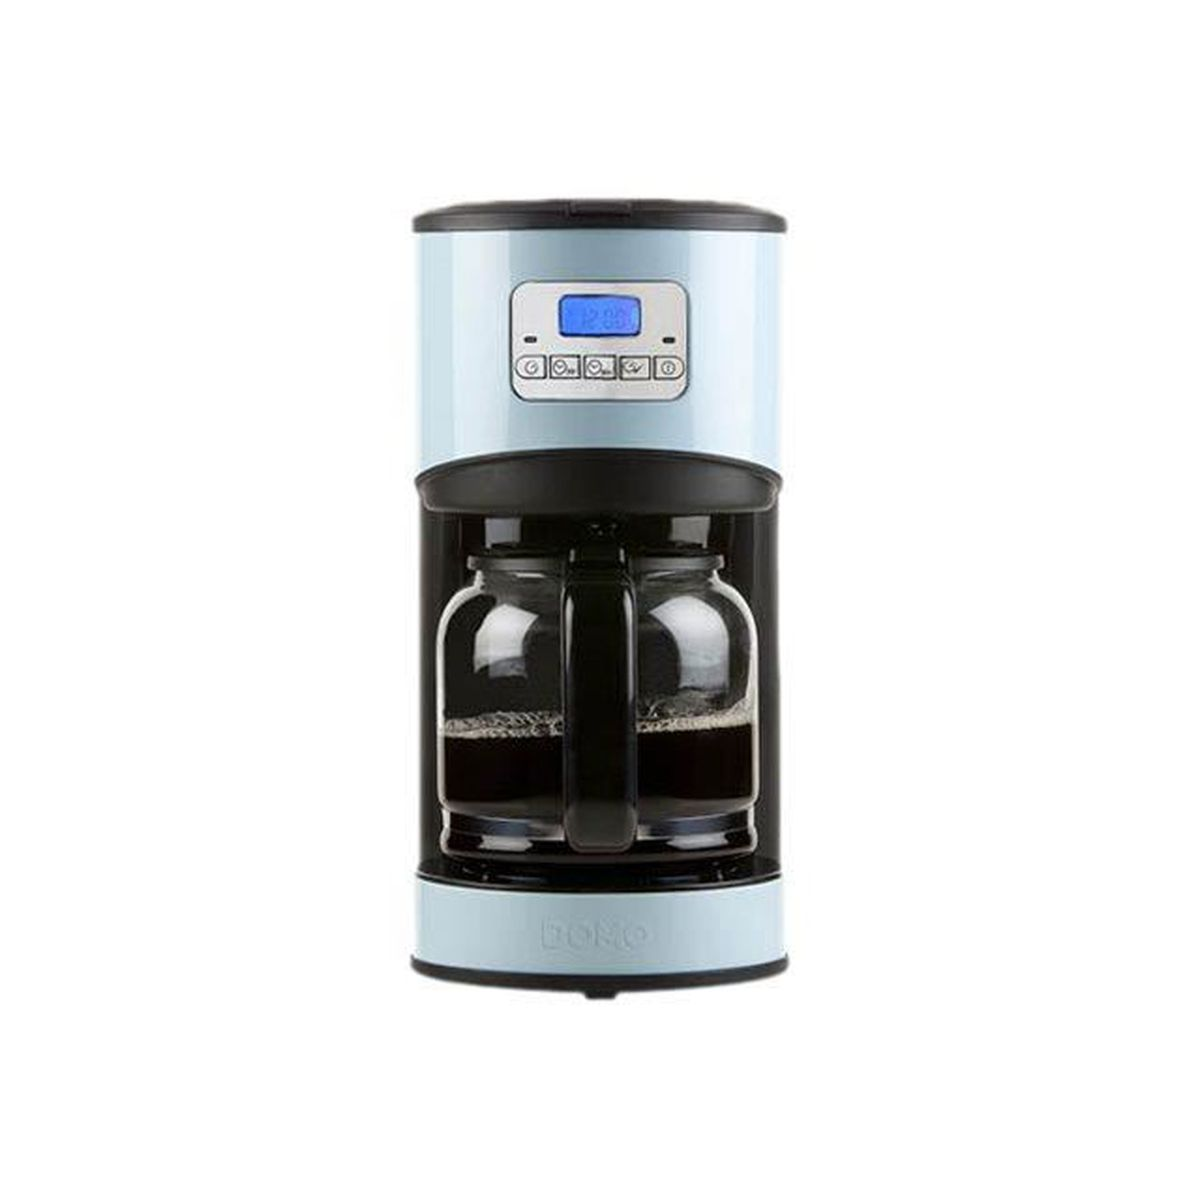 domo cafeti re lectrique programmable ecran lcd design bleu 12 tasses 1 8l achat. Black Bedroom Furniture Sets. Home Design Ideas